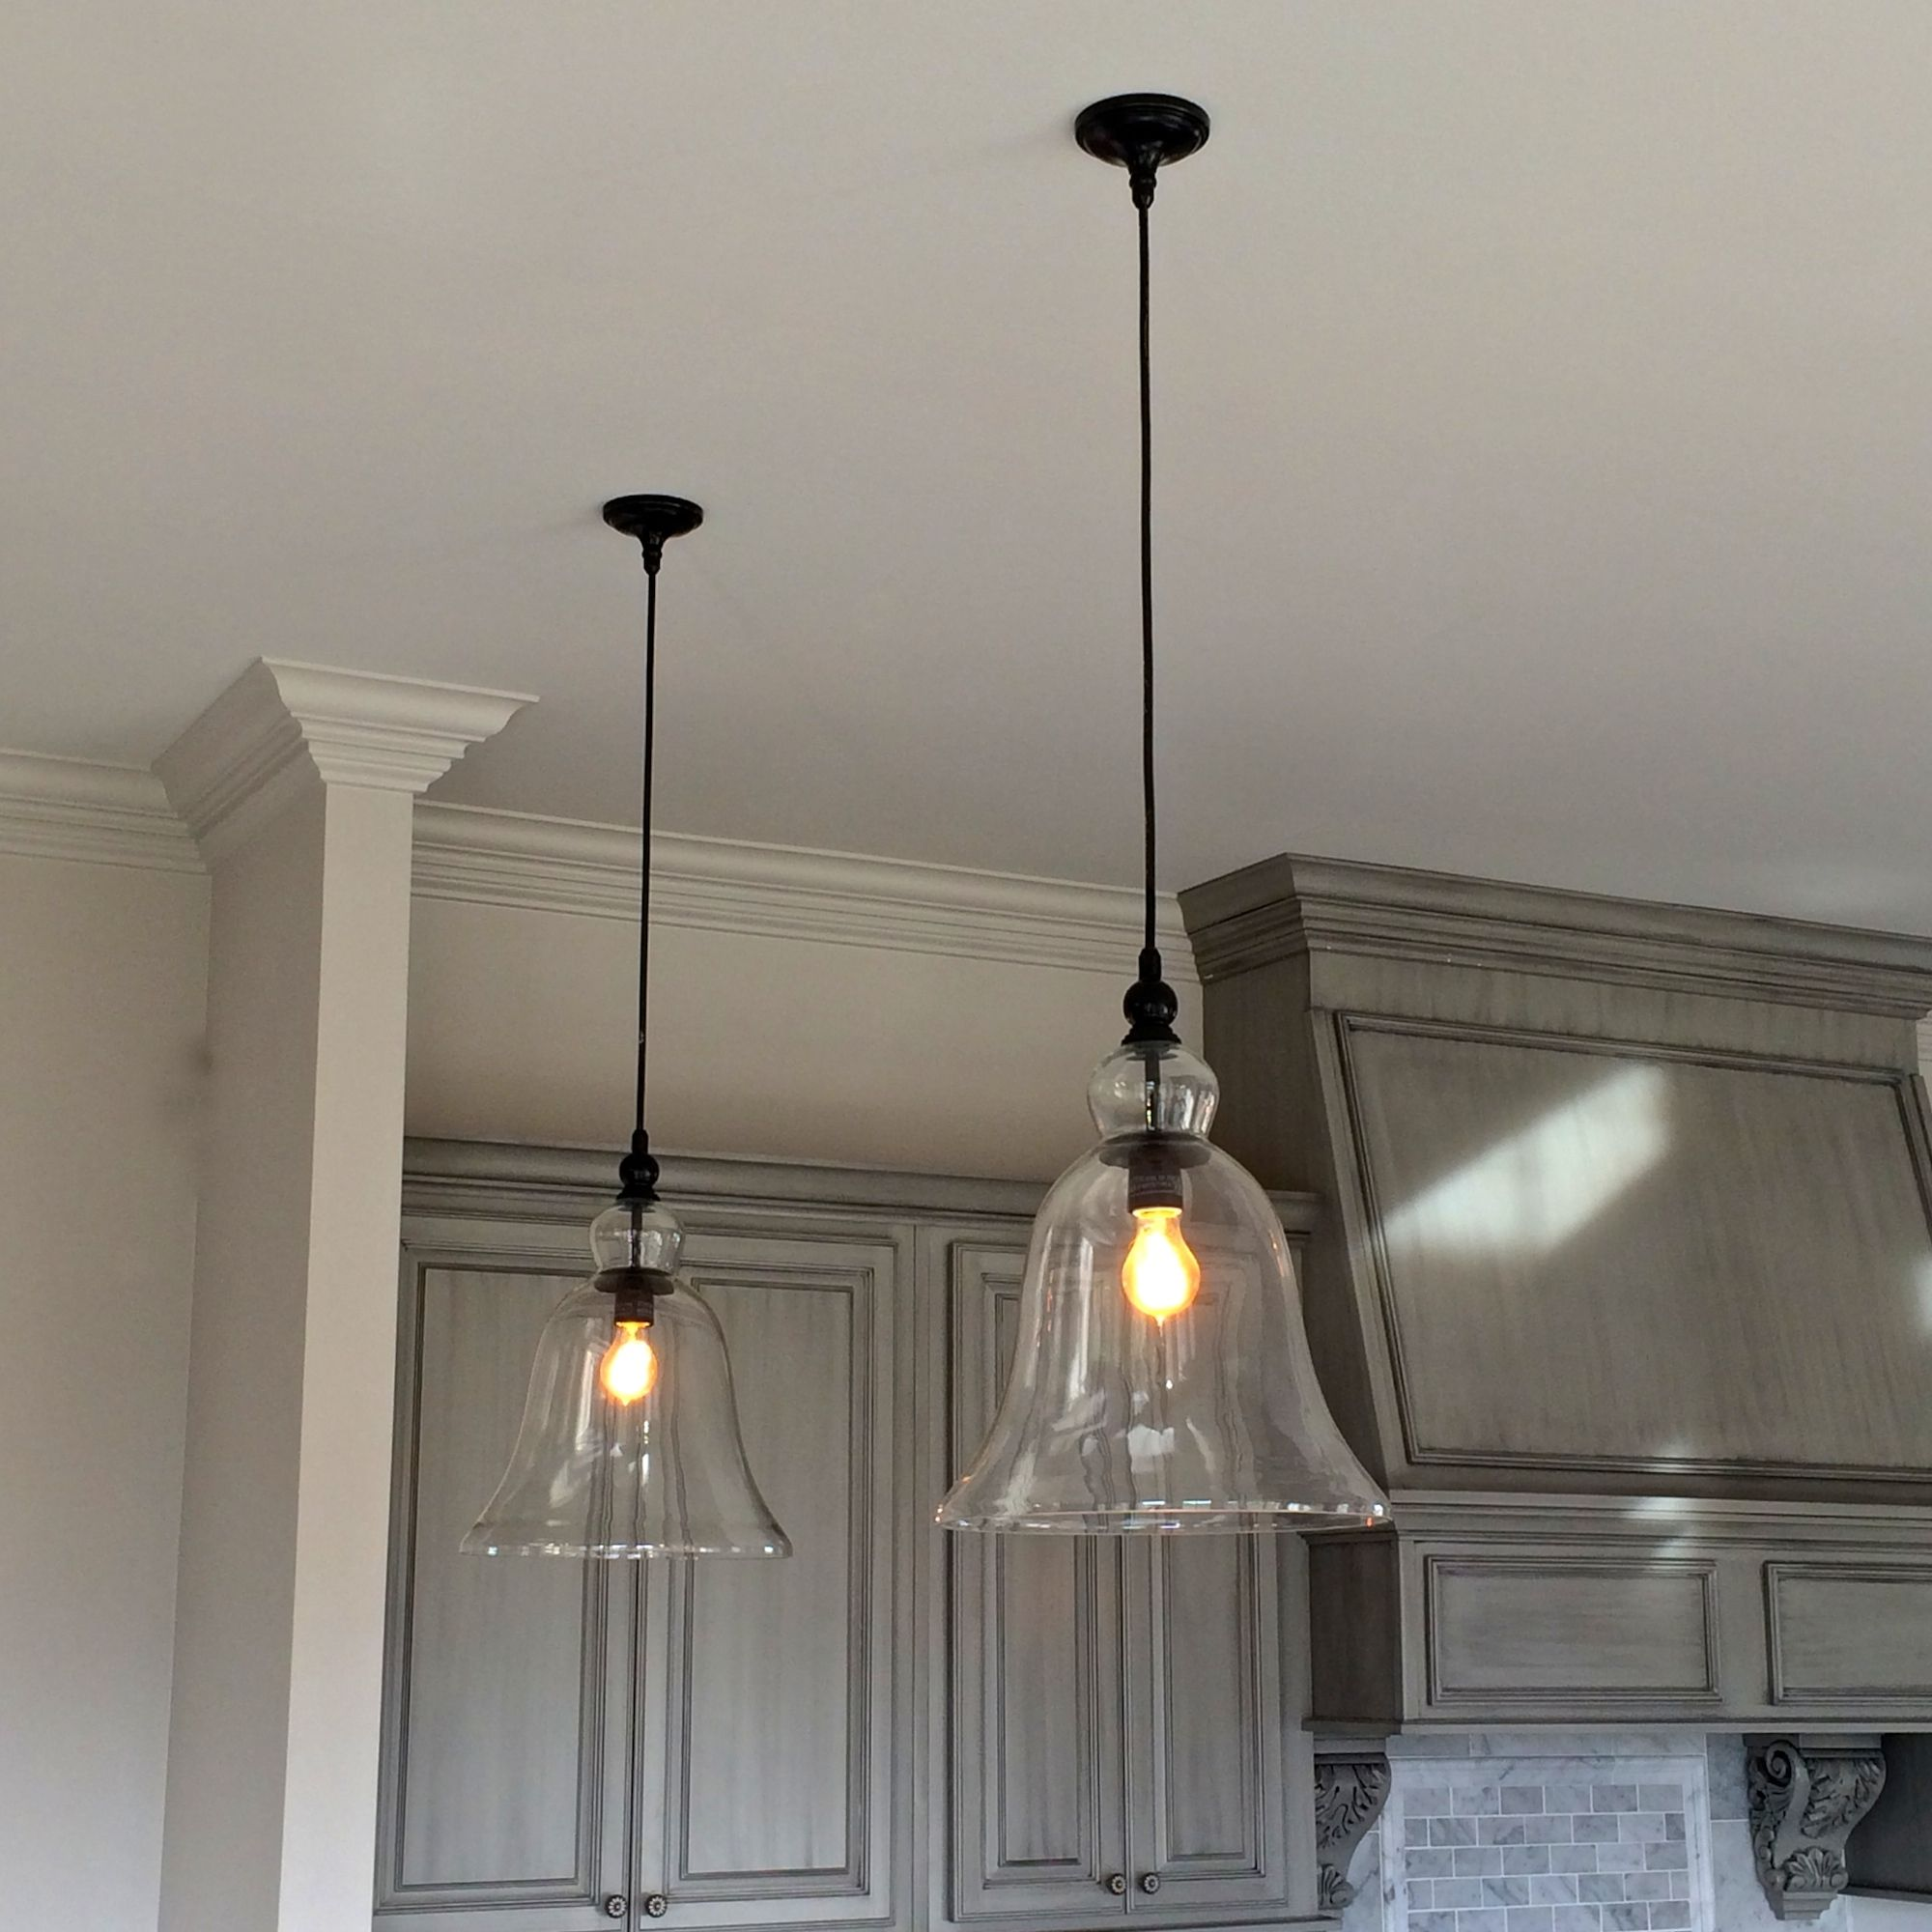 Above Kitchen Counter Large Glass Bell Hanging Pendant Lights Estess Contractors 40 Hanging Lights Kitchen Glass Kitchen Lights Hanging Pendant Lights Kitchen